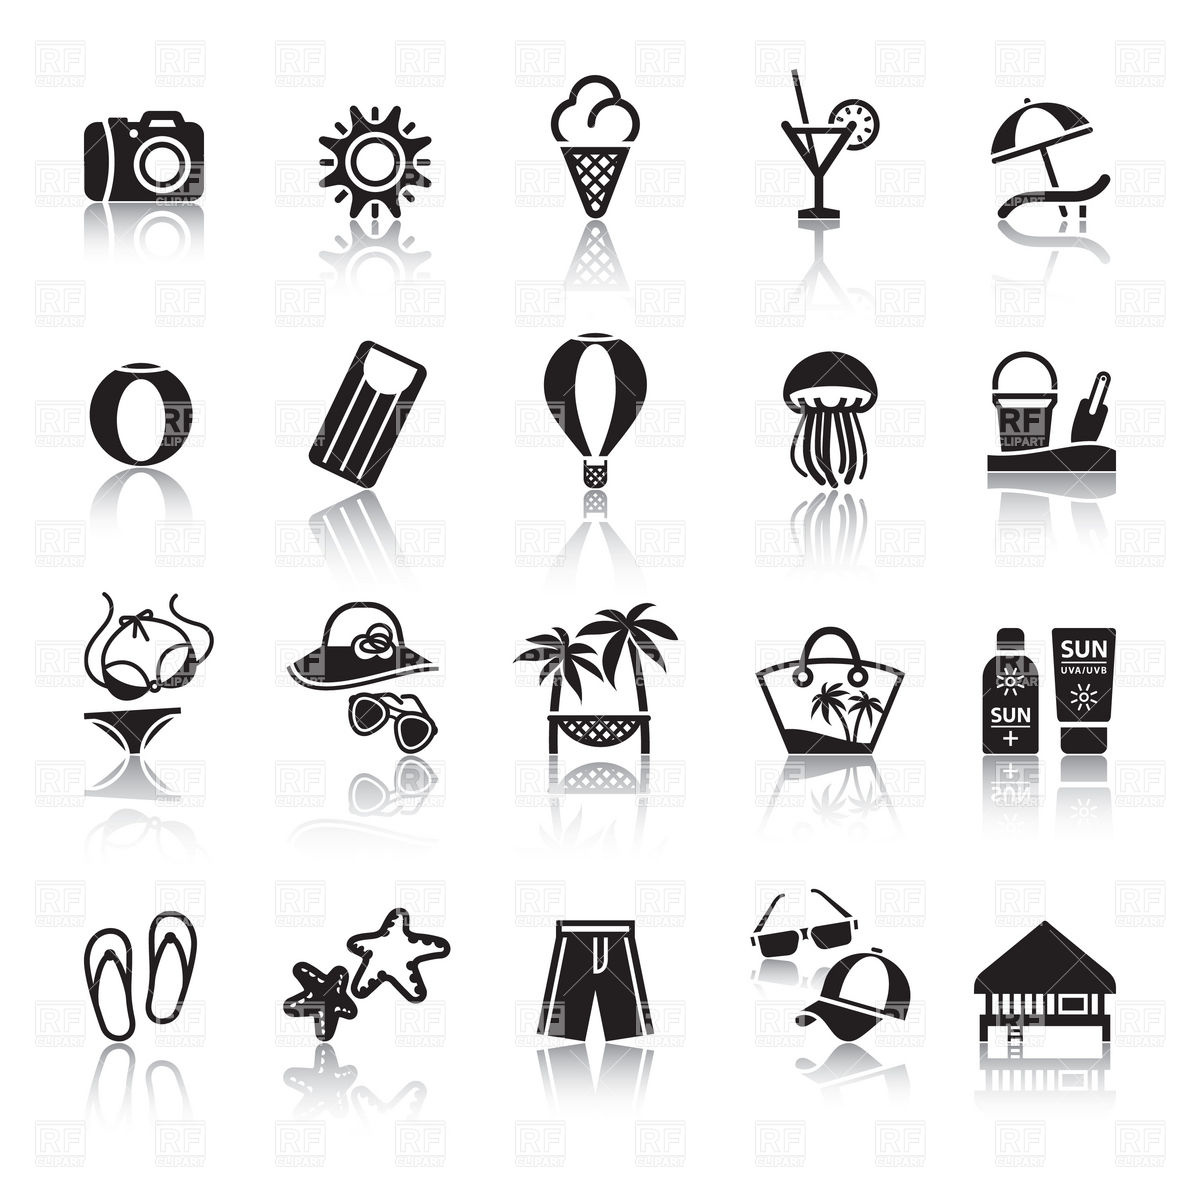 Seaside resort, rest and beach relaxation icons Vector Image.